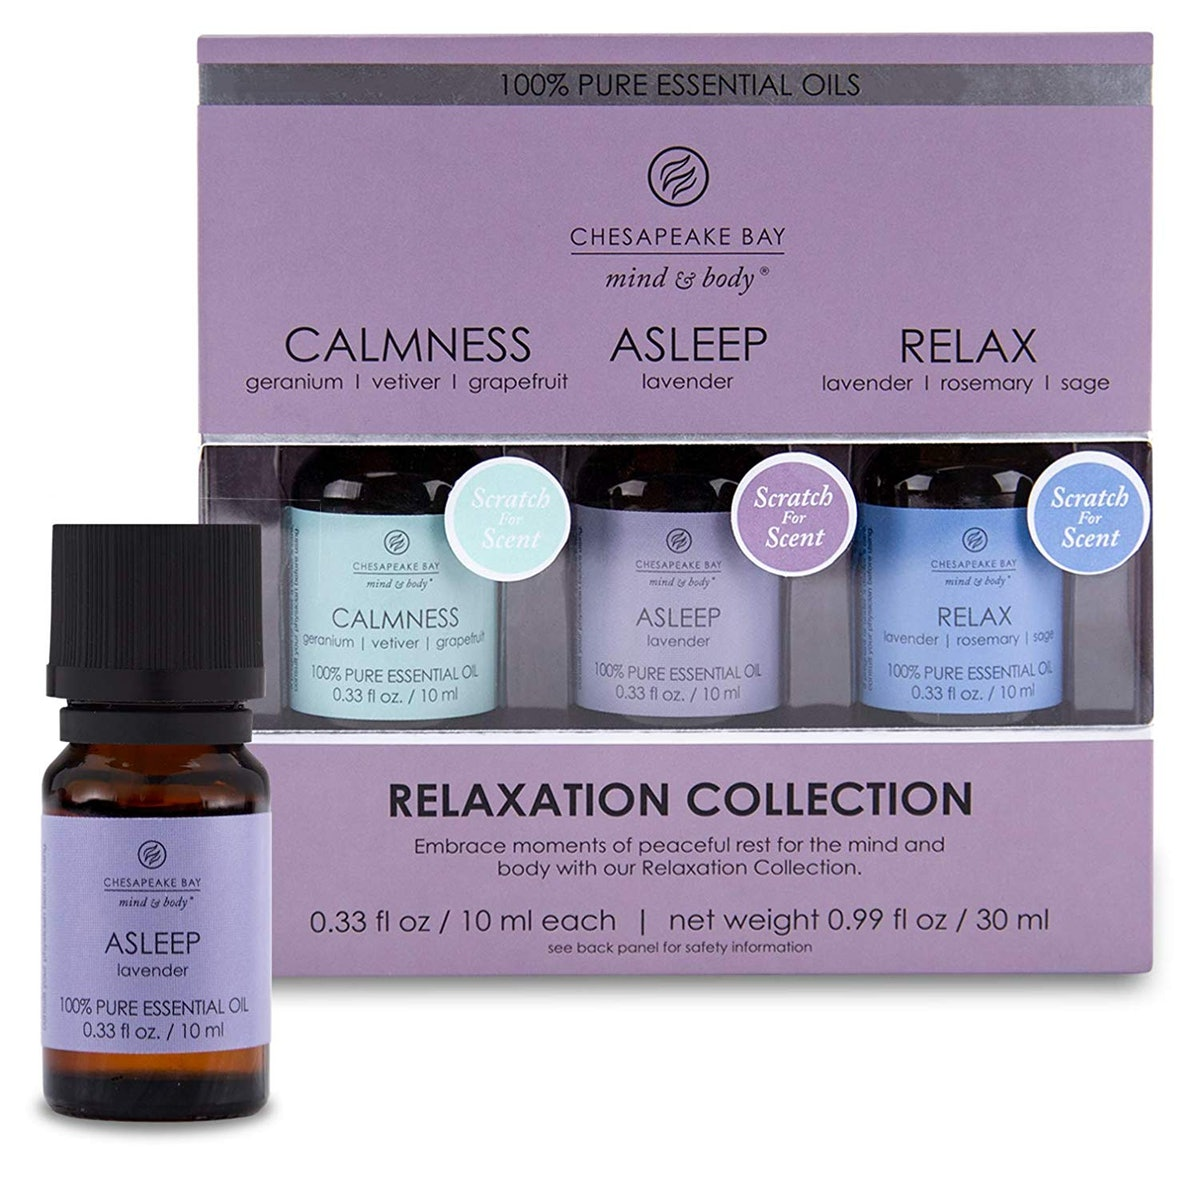 Chesapeake Bay Essential Diffuser Oils Relaxation Set (3 Pack)